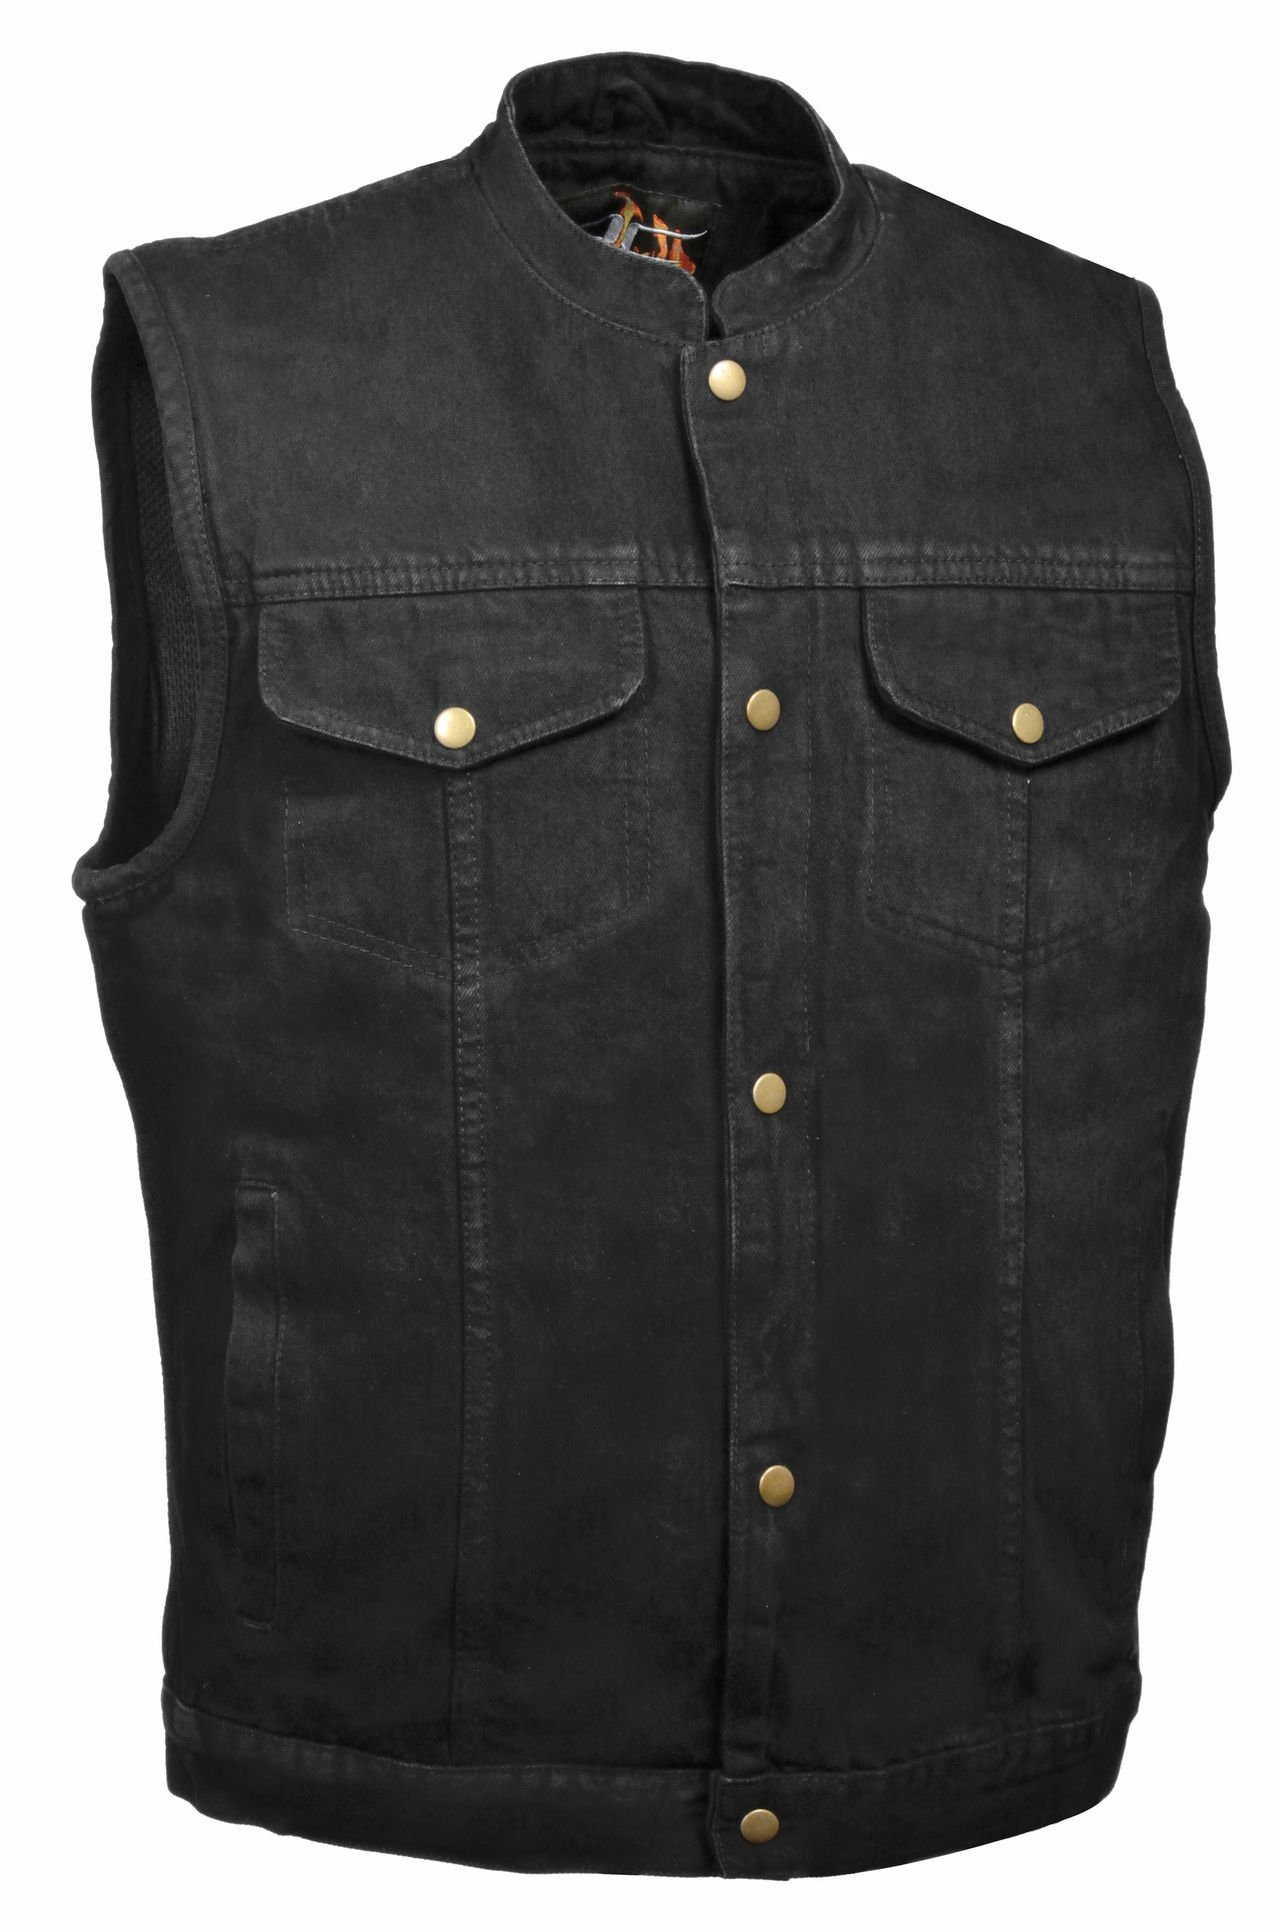 Men's Snap Front Denim Club Style Vest w/ Gun Pocket (Black, L) by Milwaukee Leather